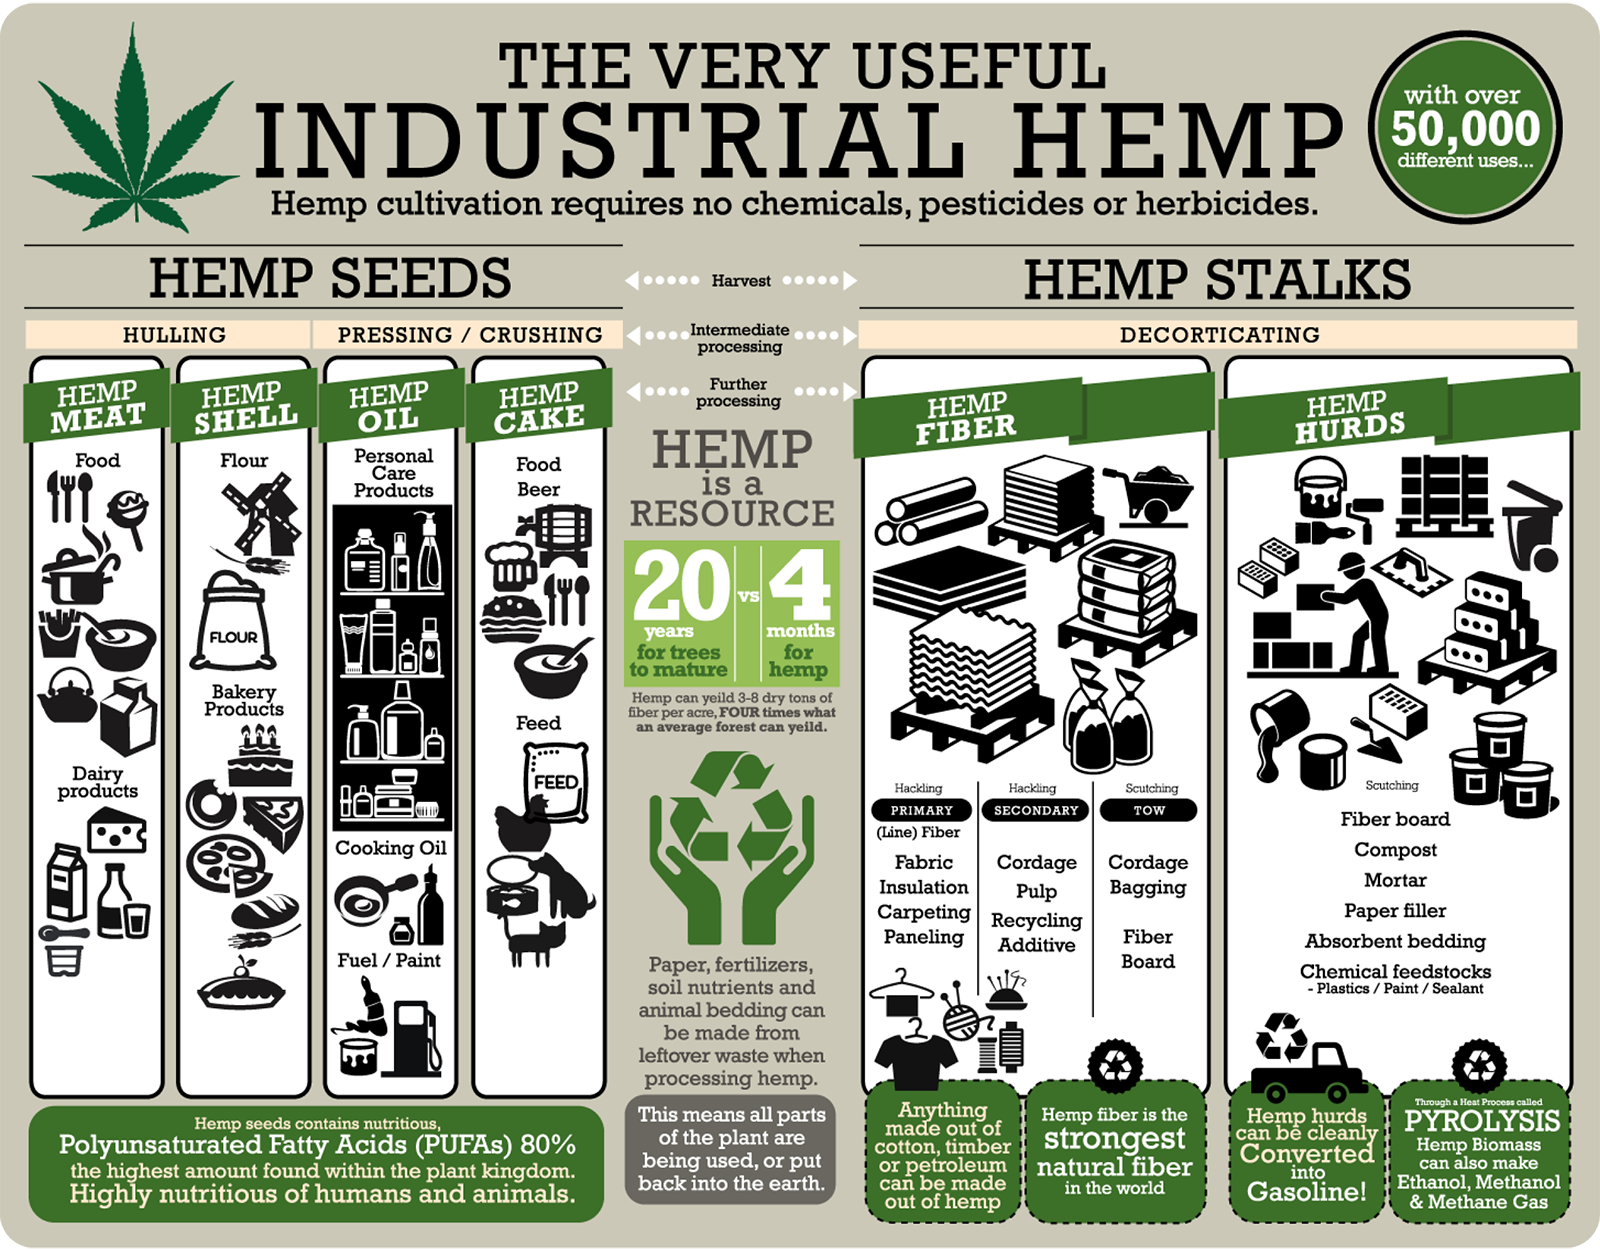 Source - RealHemp.com